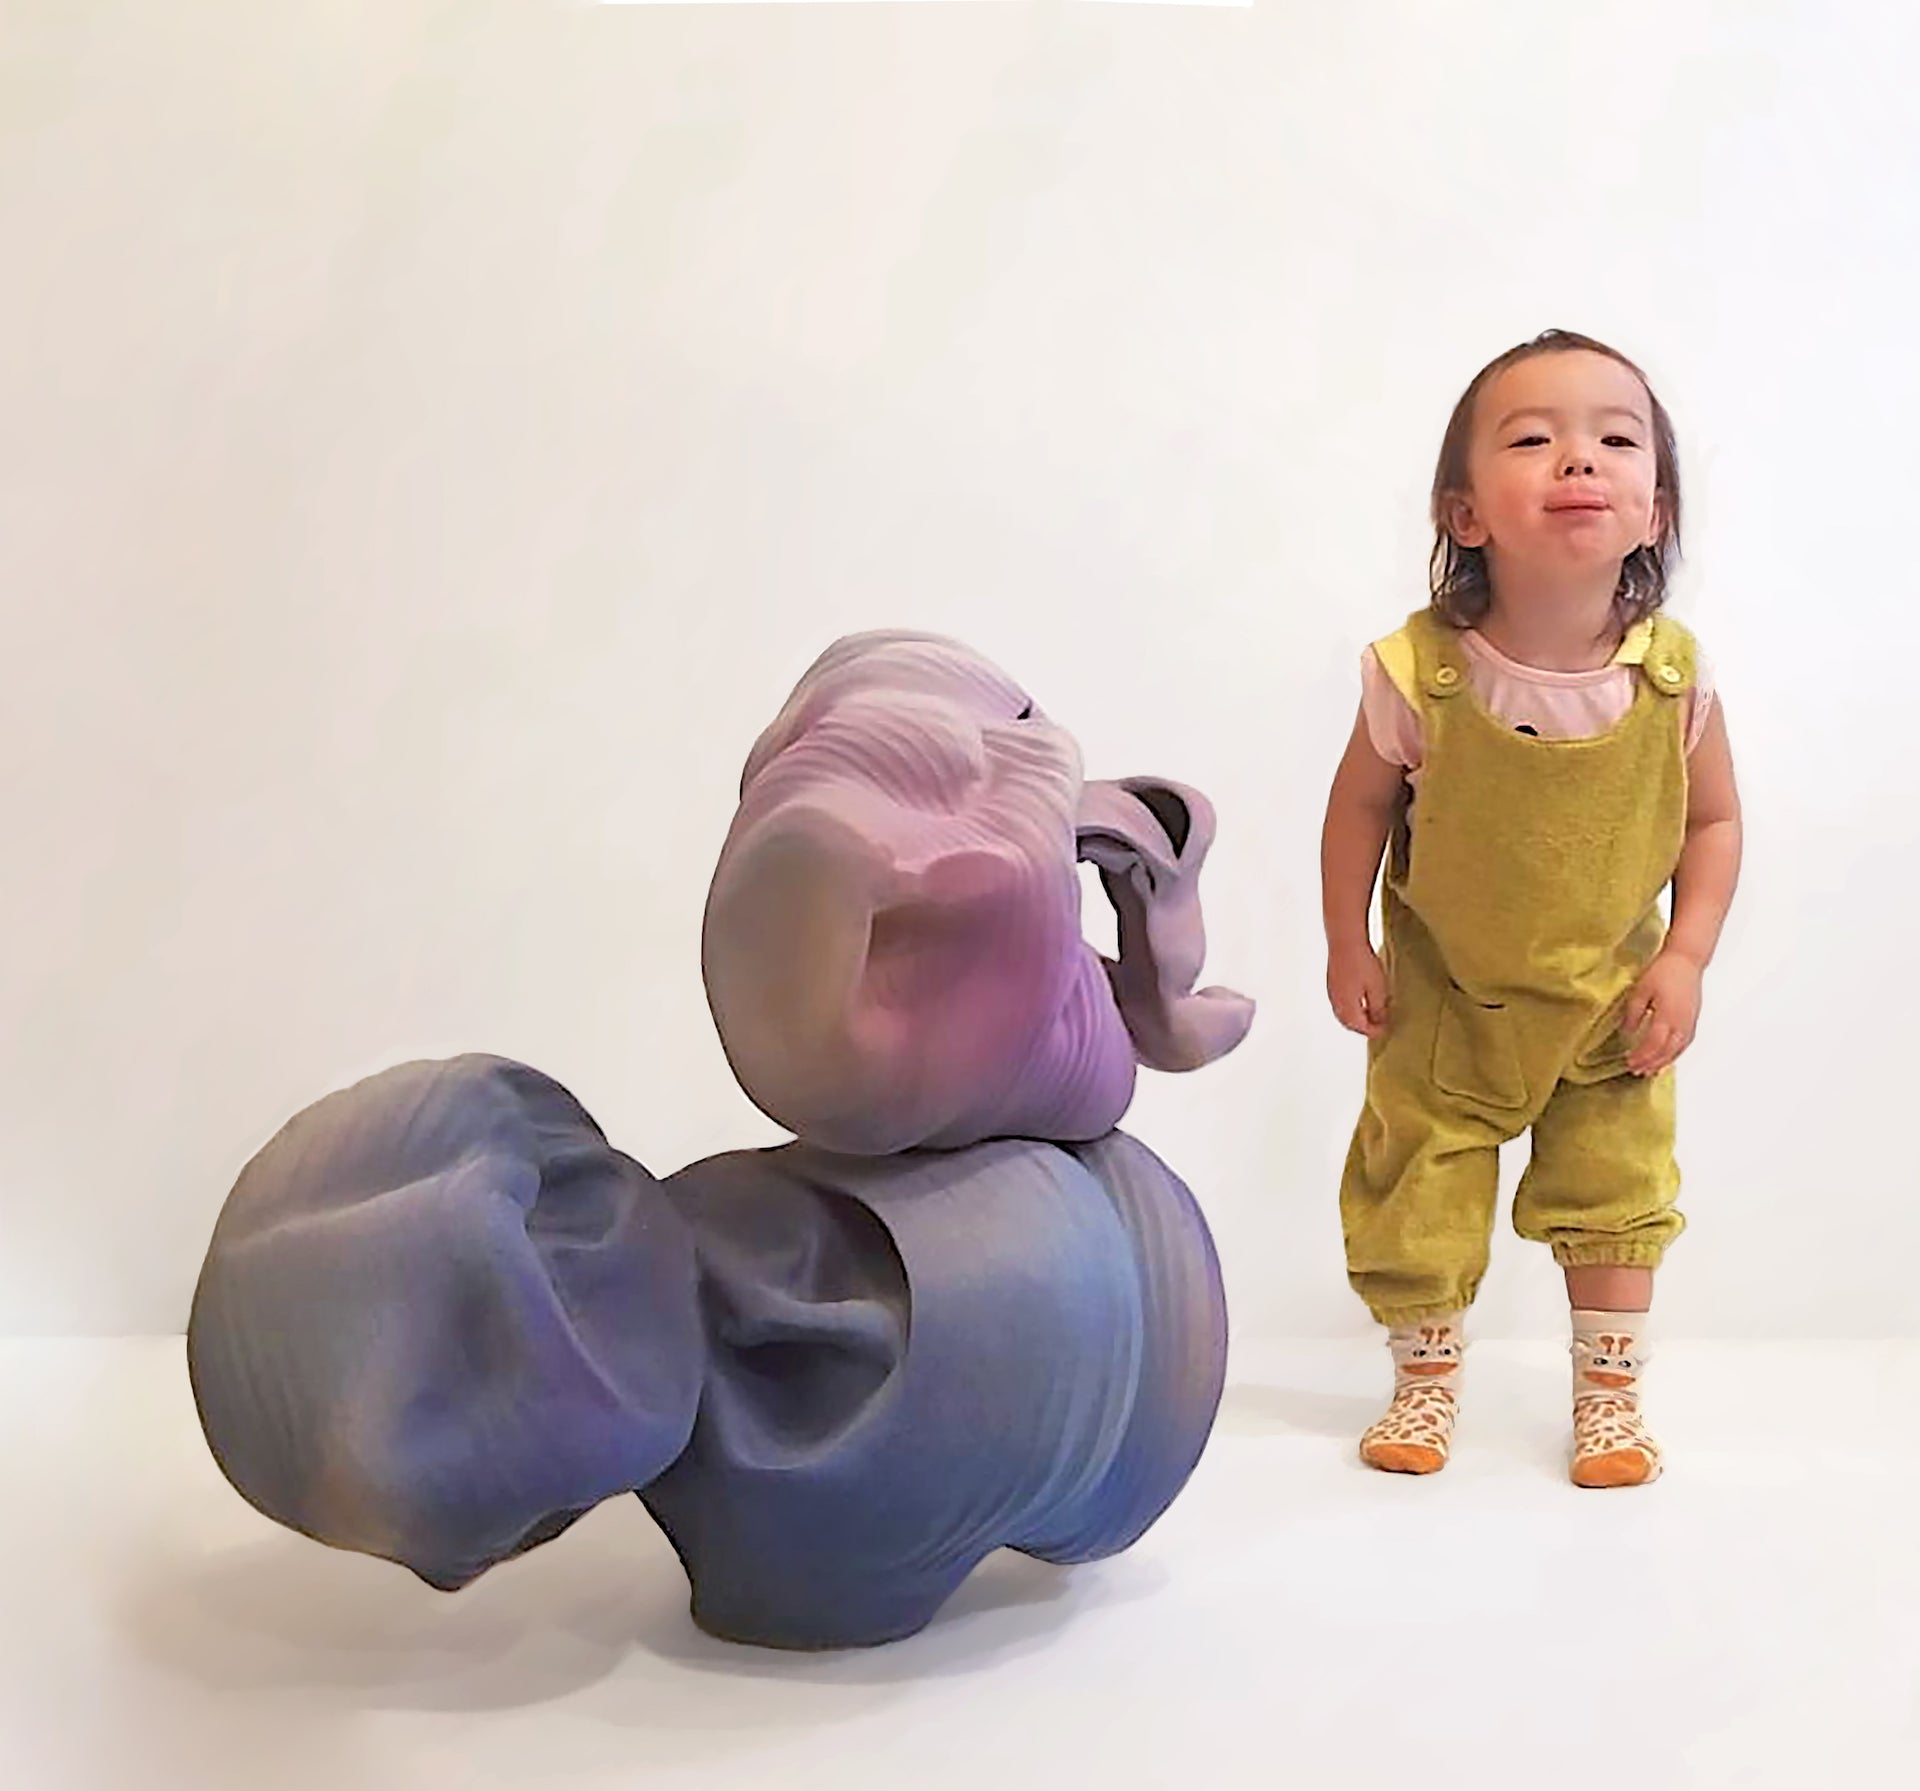 Aya Jacques pictured with It's a Toy Violet Brain, a 2018 work by Anne Marie Laureys. Photo © Jason Jacques Gallery